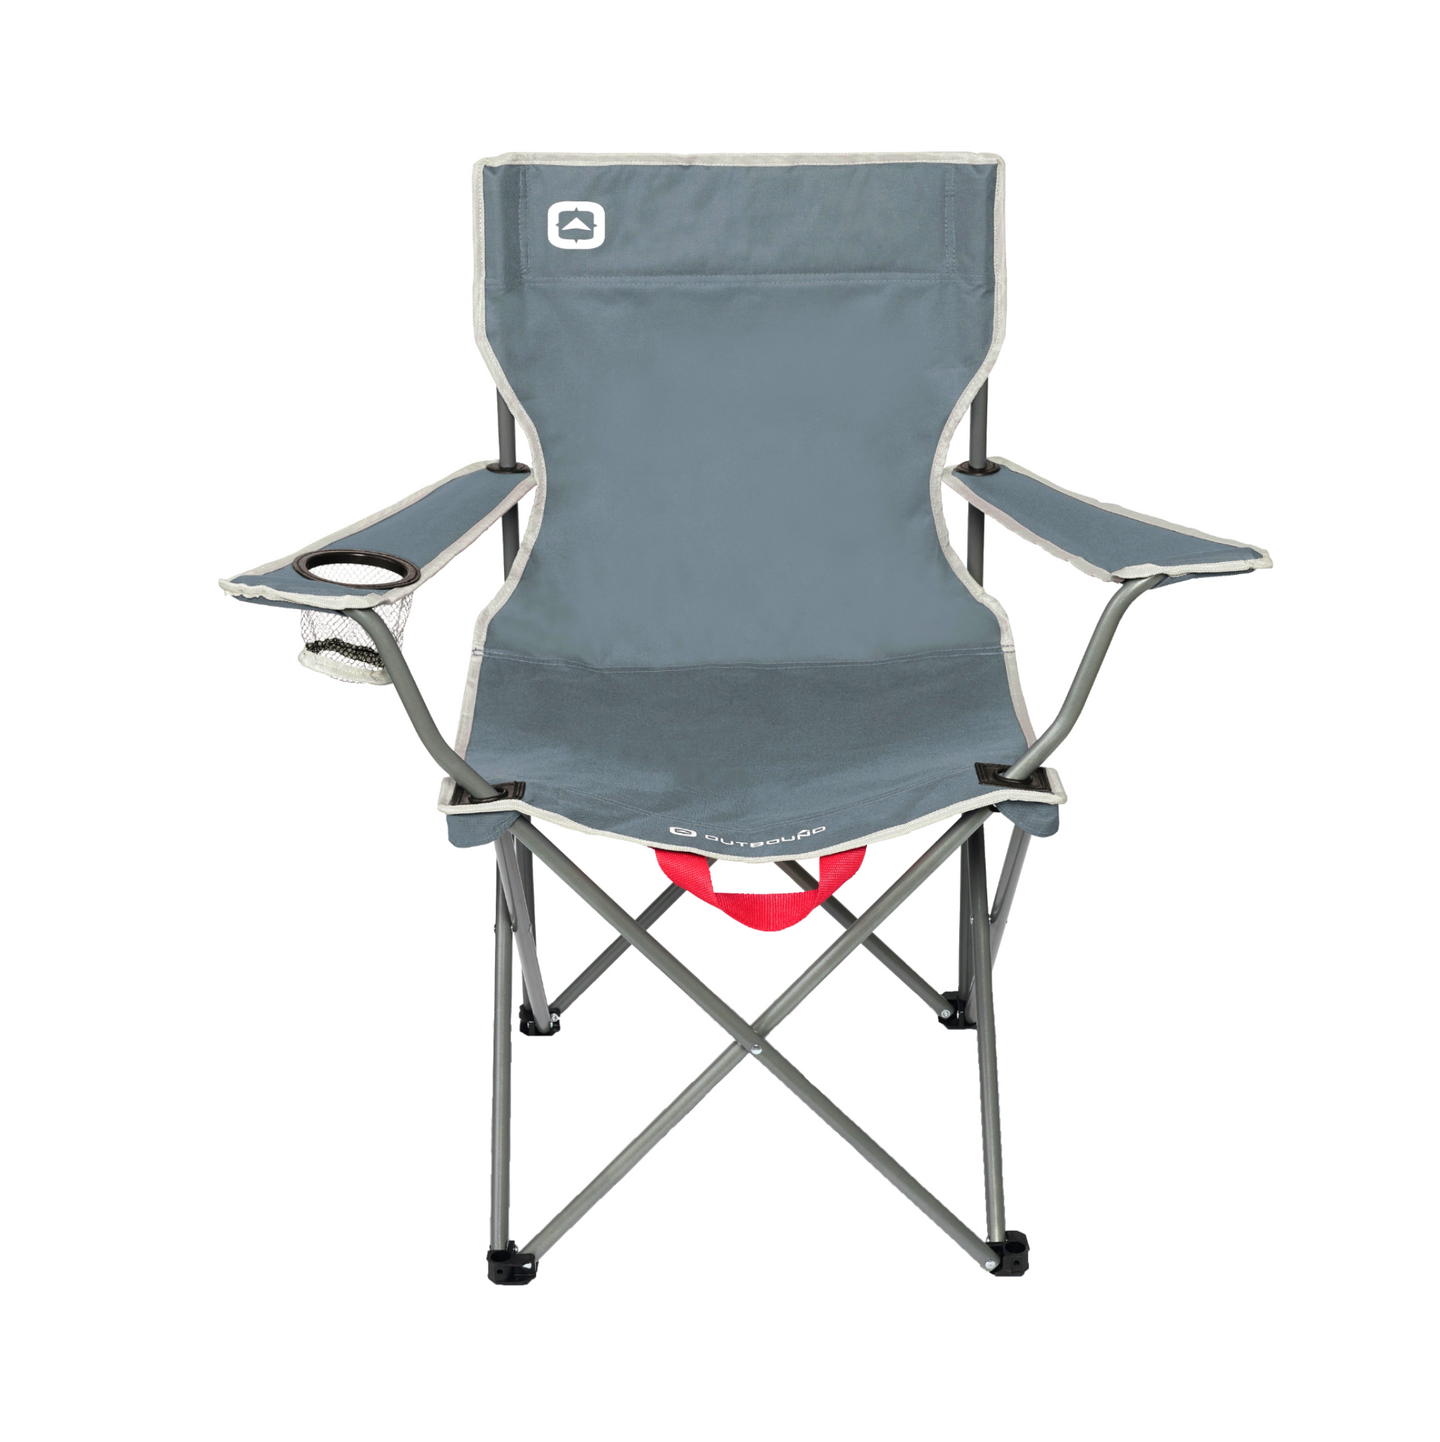 Outbound Portable Folding Wide Back Quad Camping Chair with Cup Holder - Gray